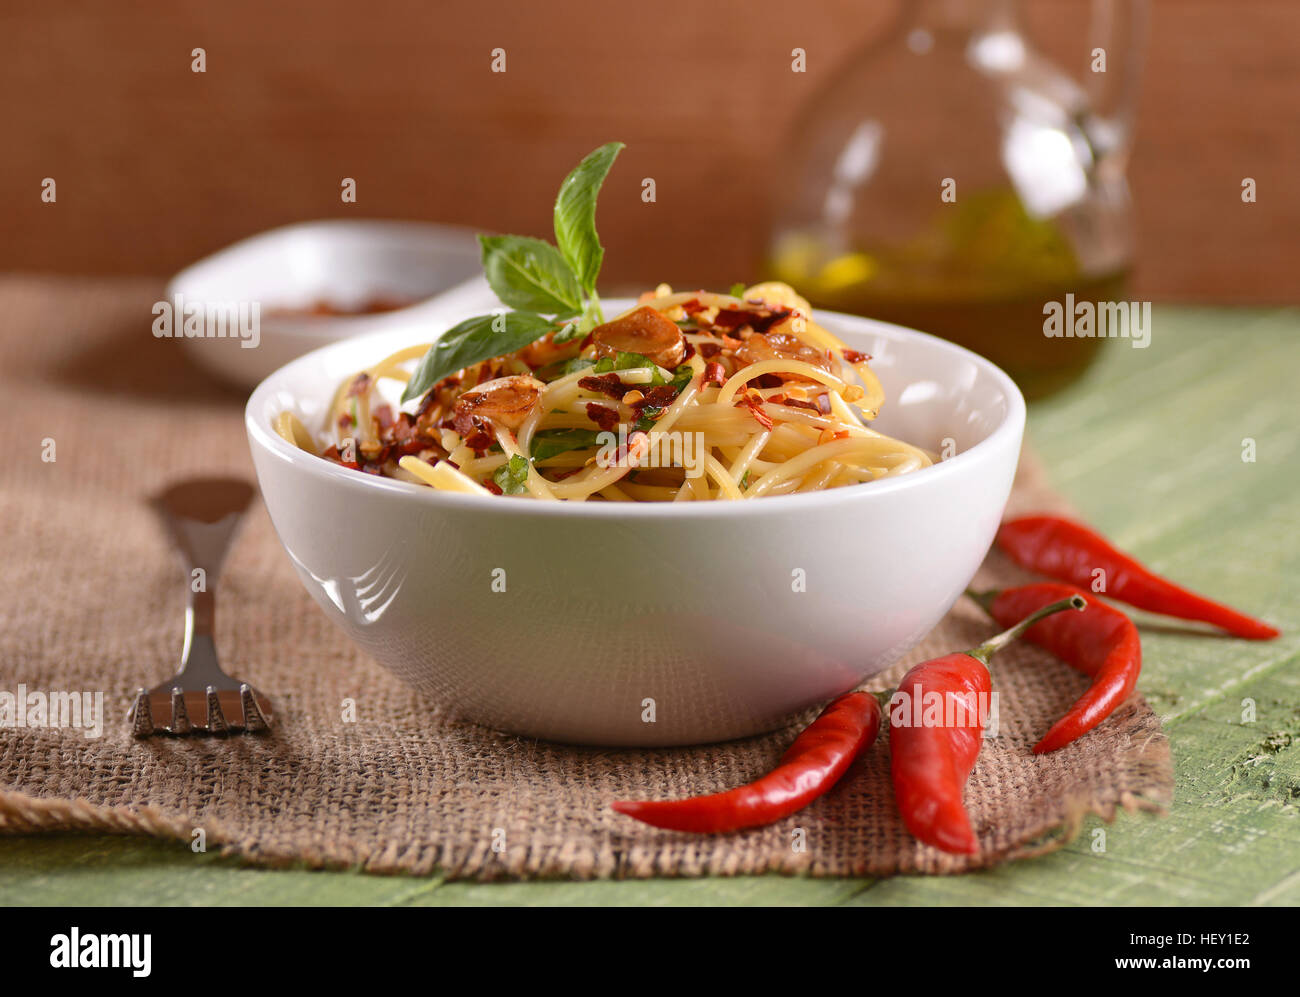 Spaghetti with garlic, oil and hot pepper - traditional Italian recipe - Stock Image